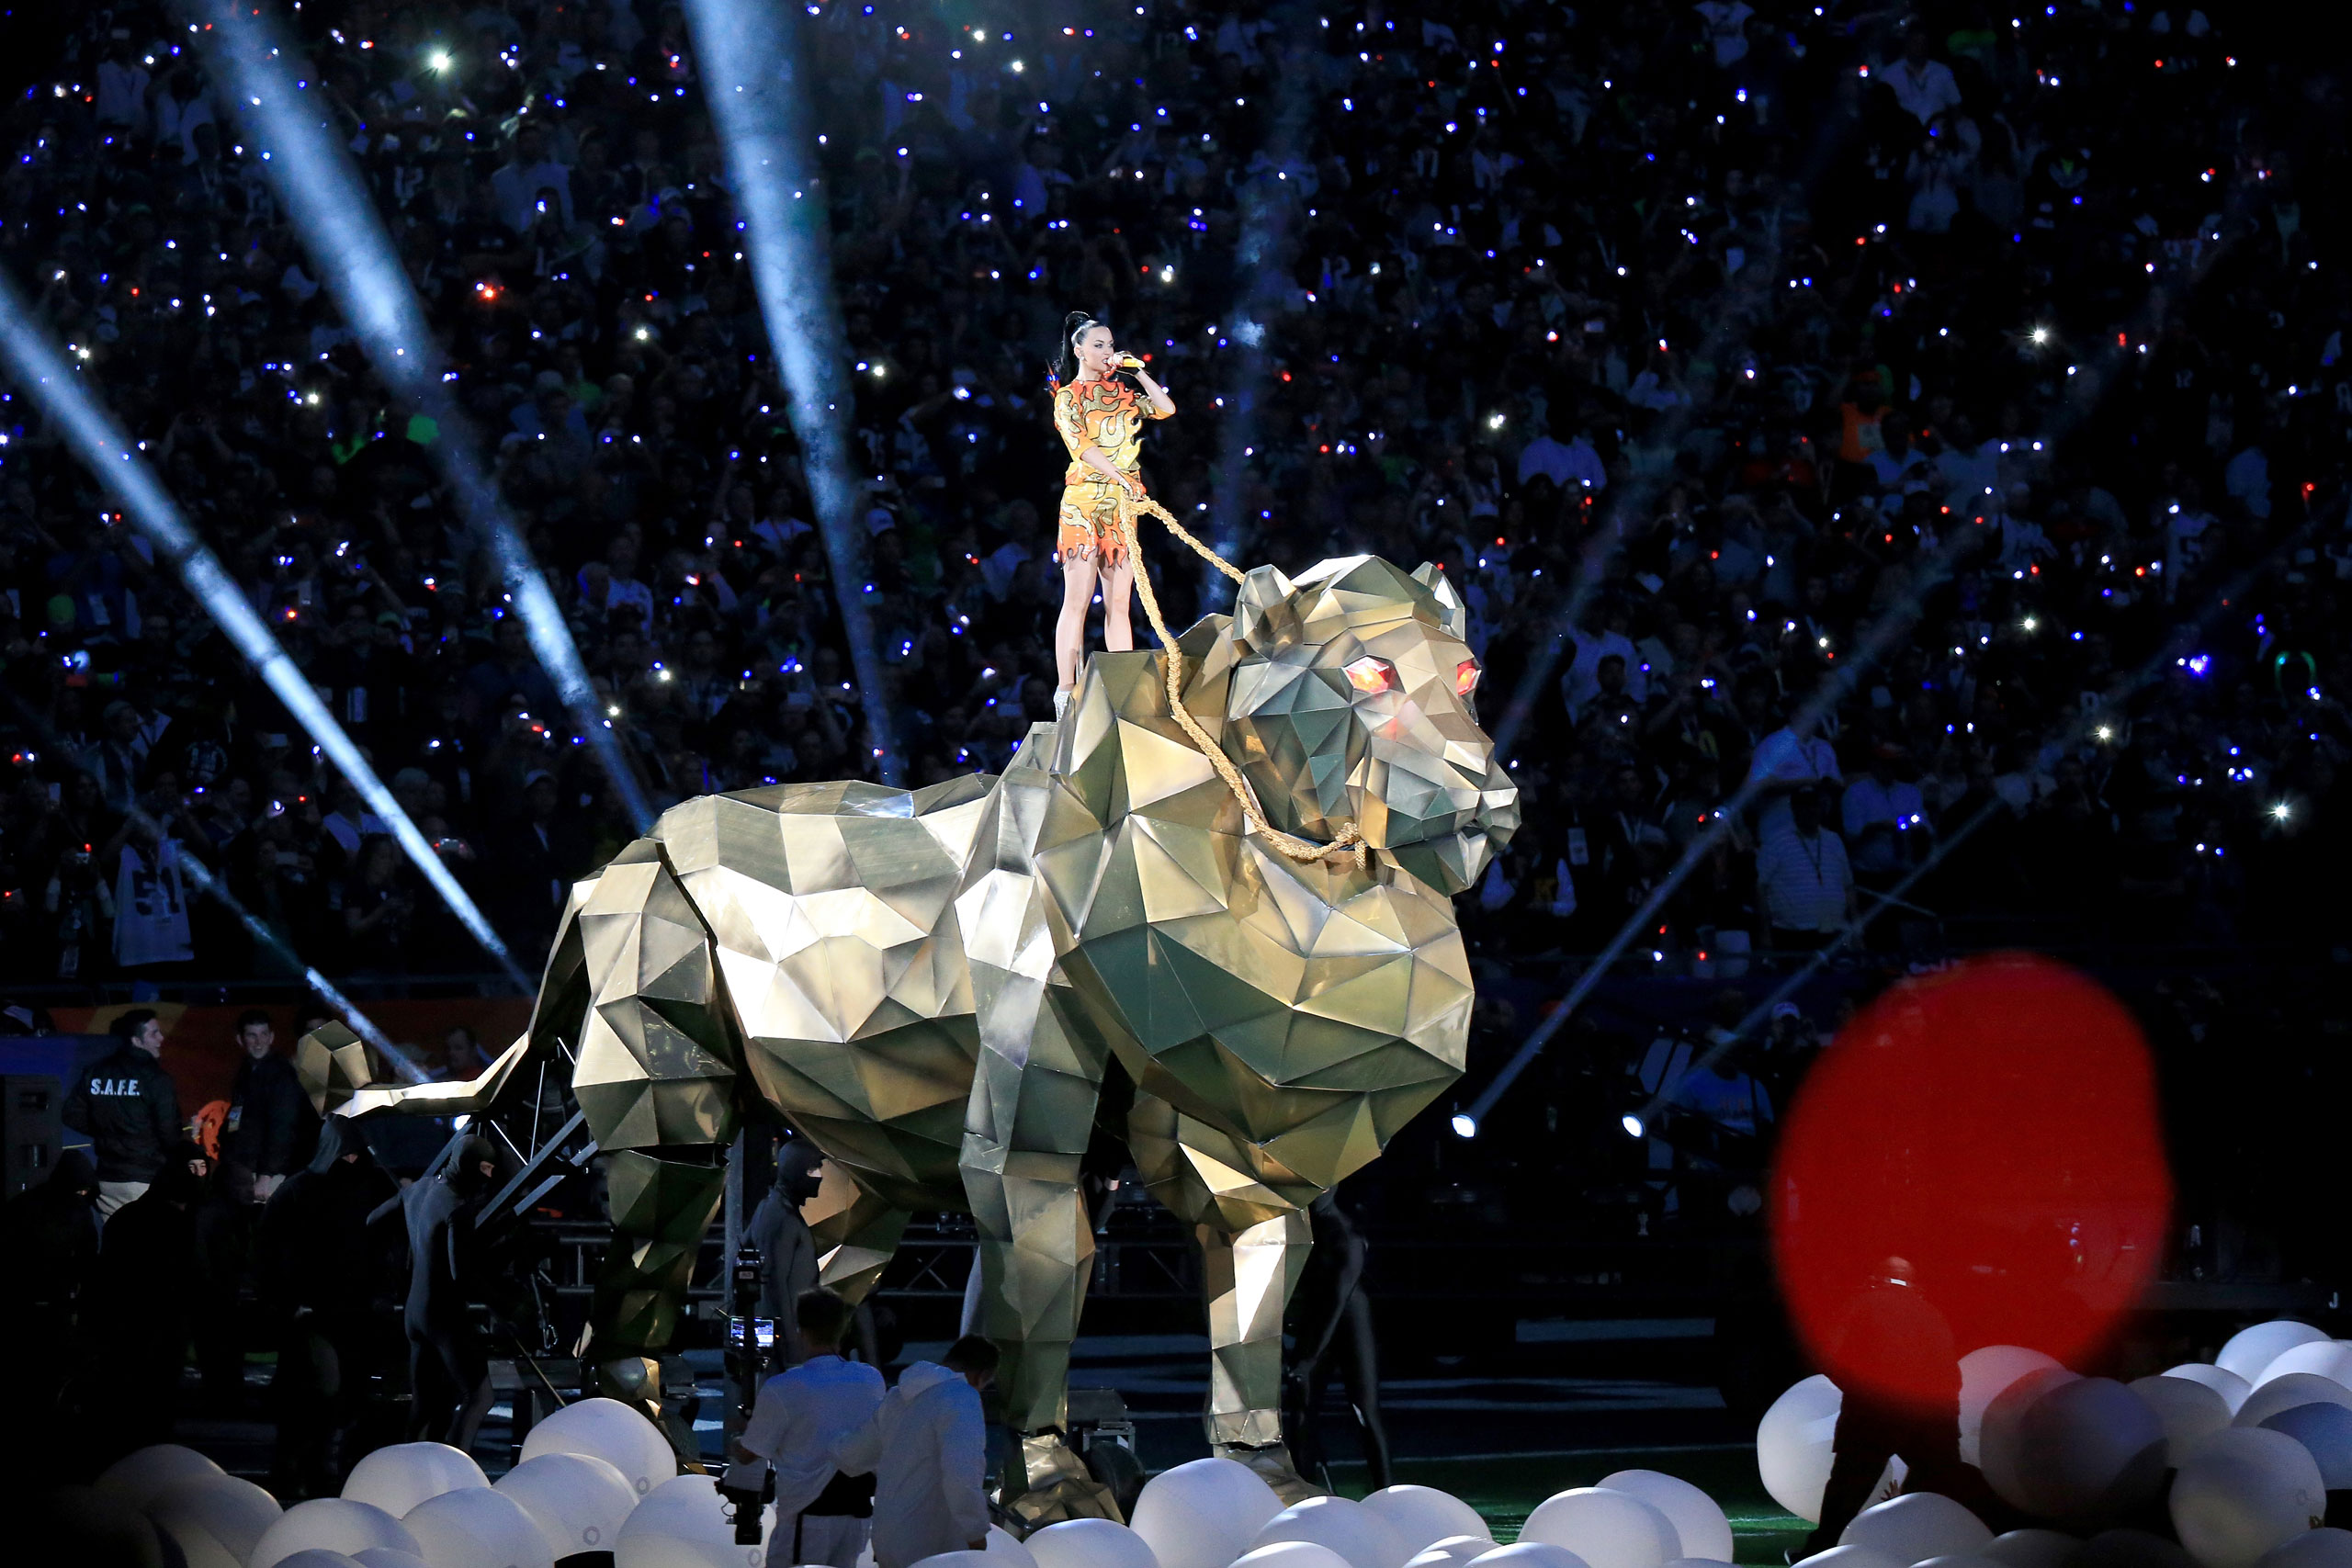 Katy Perry performs onstage during the Pepsi Super Bowl XLIX Halftime Show at University of Phoenix Stadium on Feb. 1, 2015 in Glendale, Ariz.